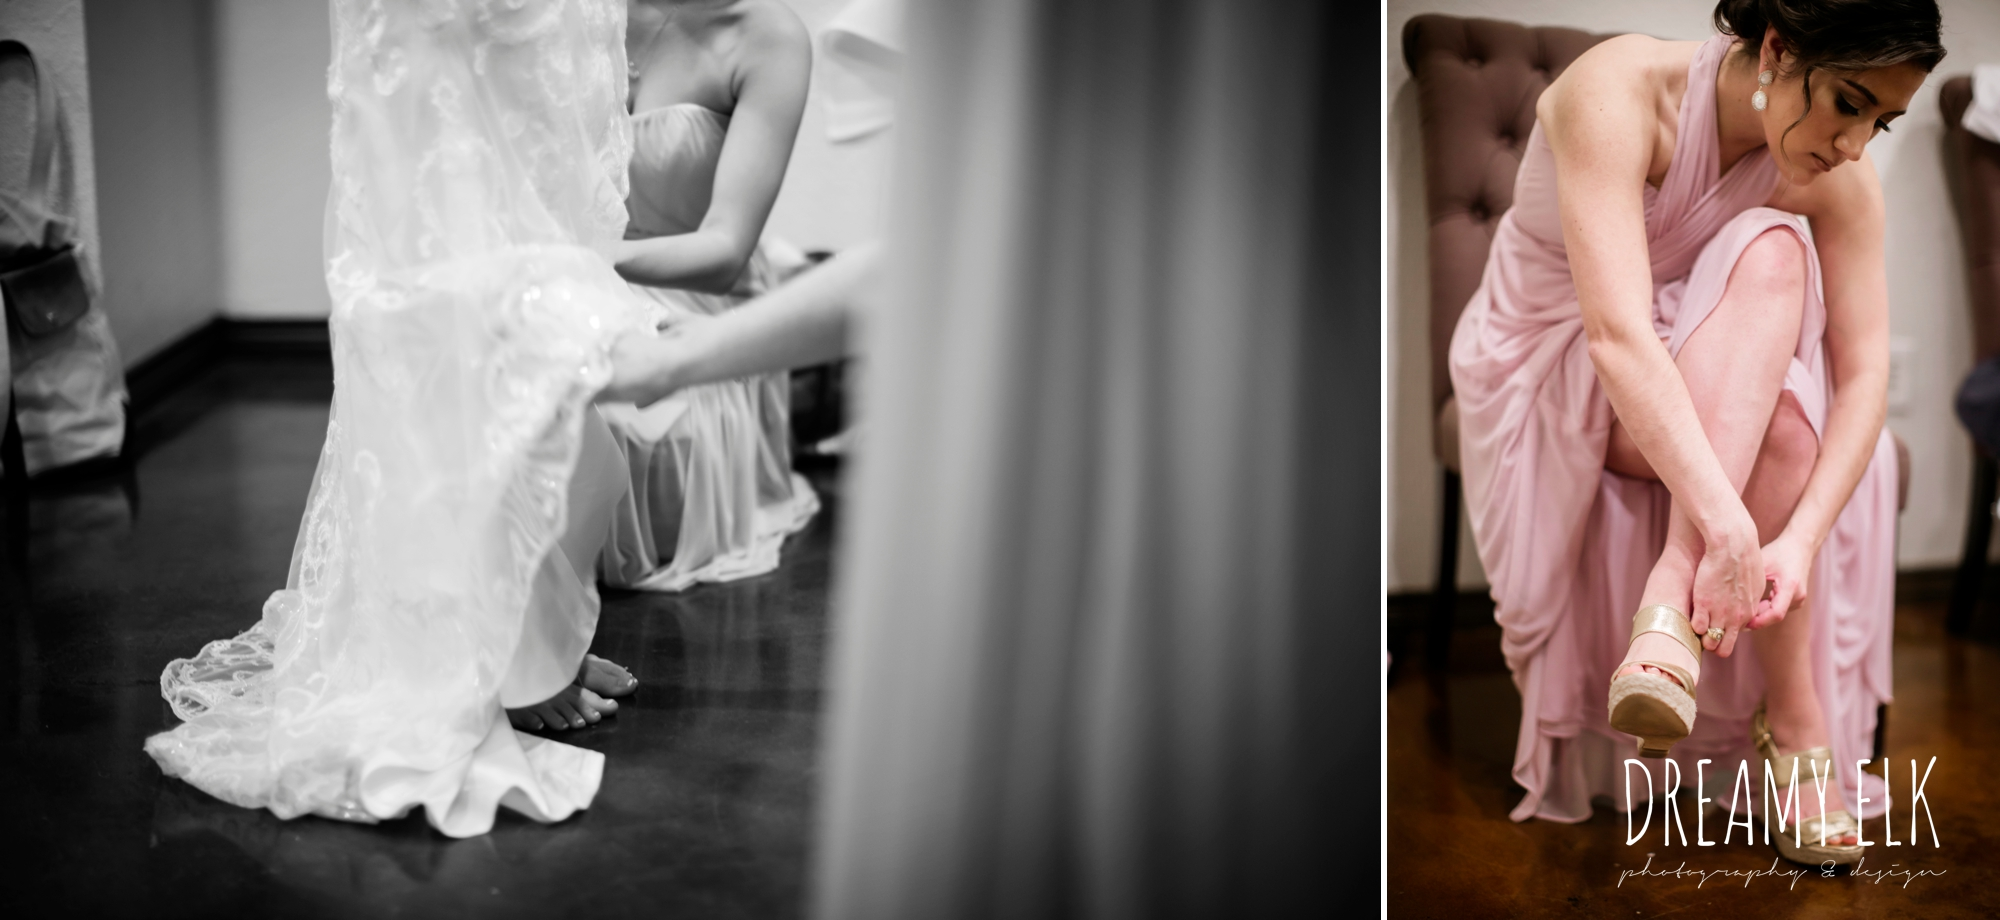 bride getting dressed, putting on shoes, cloudy march wedding photo, canyon springs golf club wedding, san antonio, texas {dreamy elk photography and design}